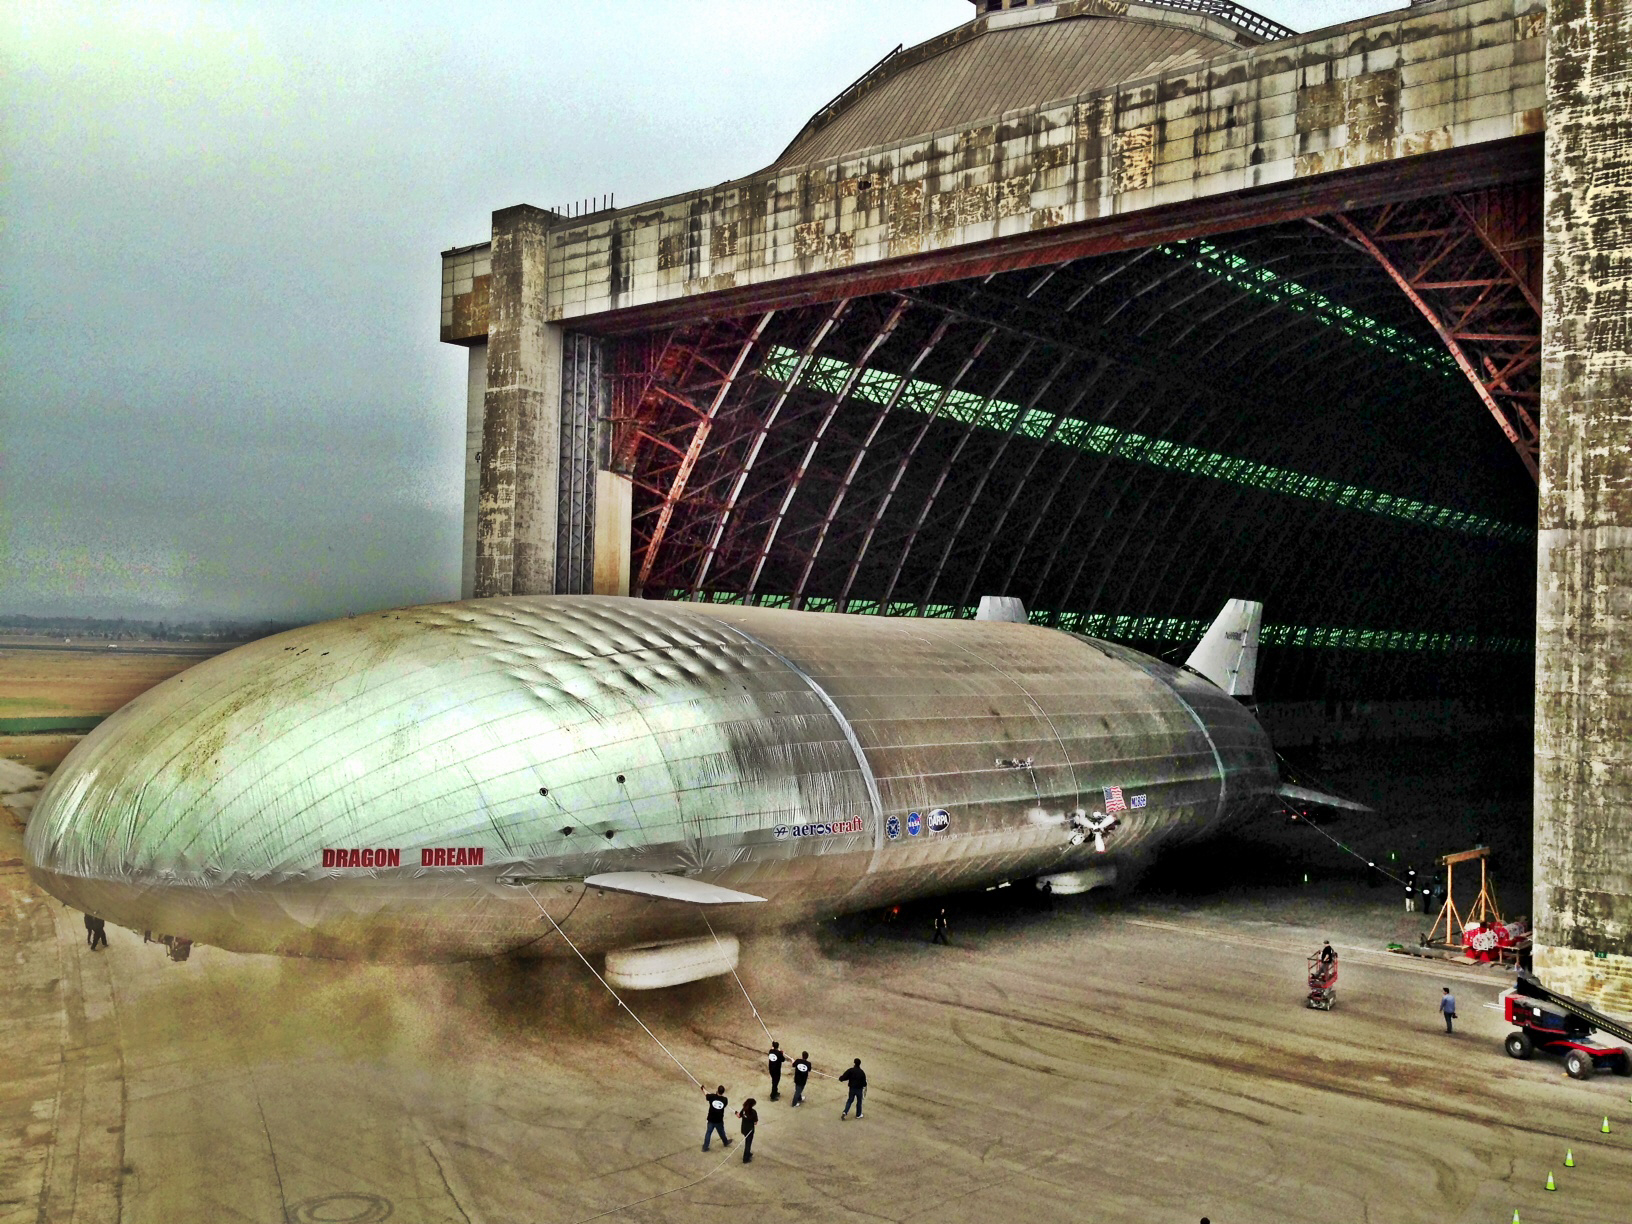 Aeroscraft Shows Off Its Giant Airship | Popular Science